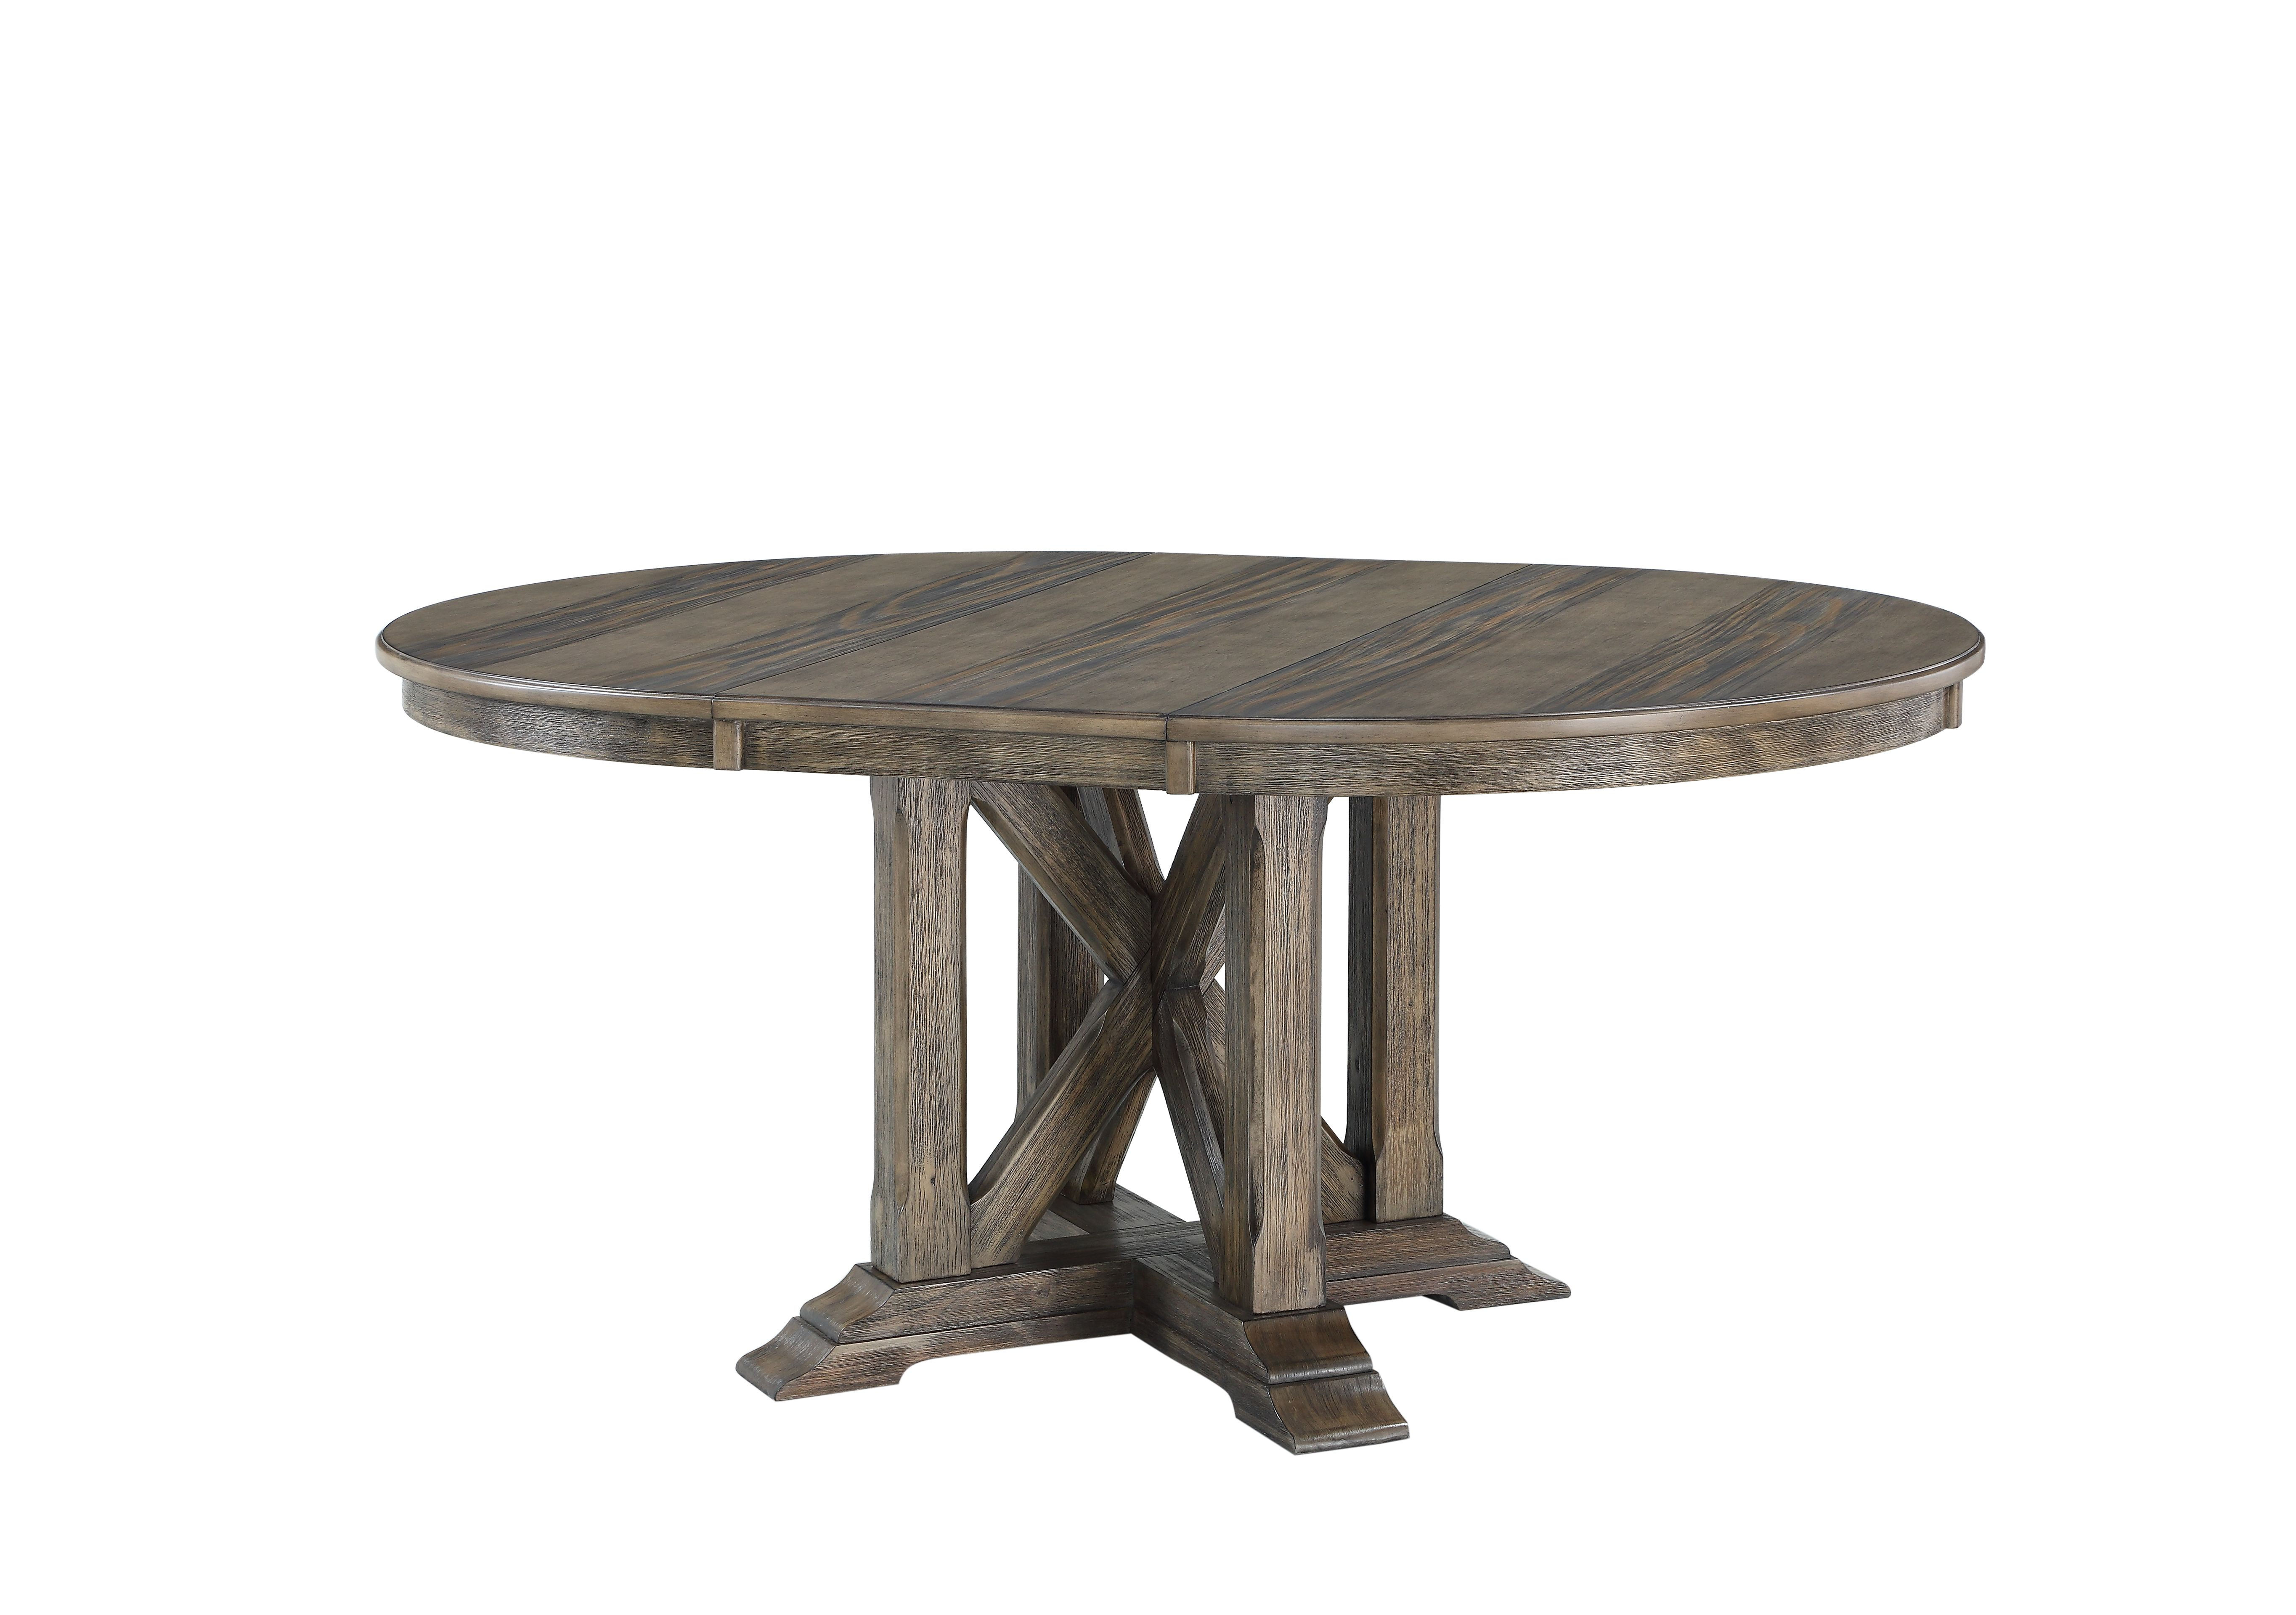 ... Inch Round Dining Table Click To Enlarge ...